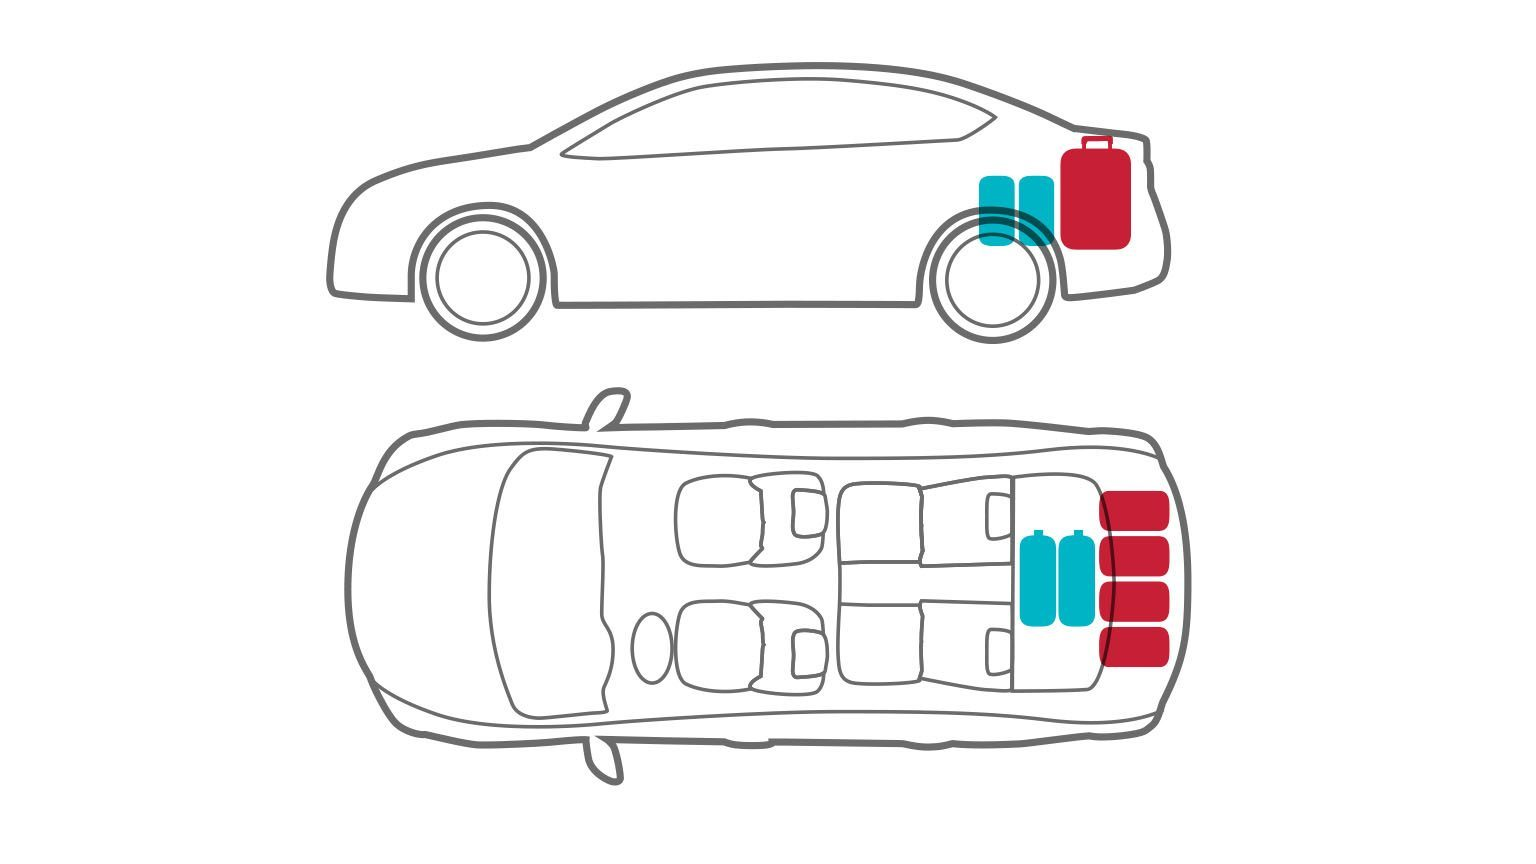 Animation of car with luggage in trunk